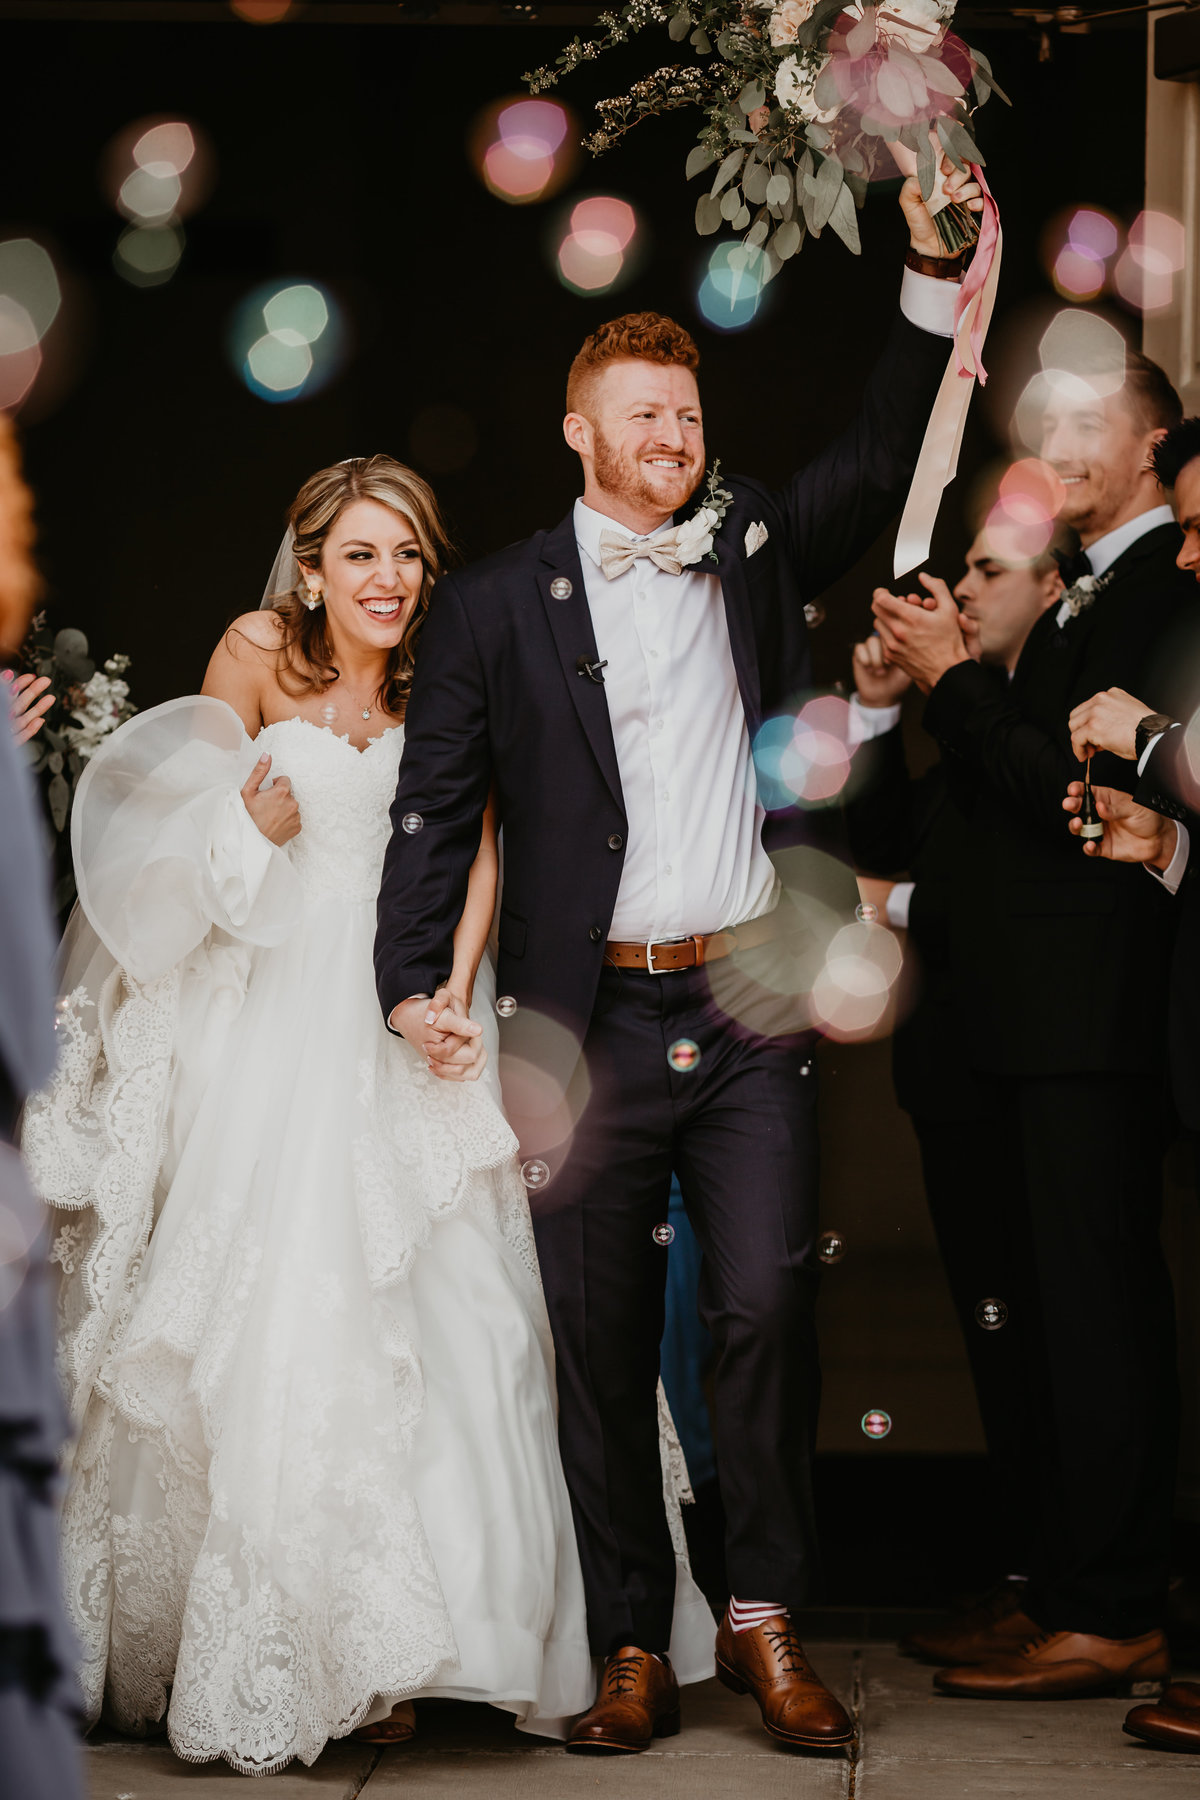 Cleveland Ohio Wedding couple with lovely bubble exit